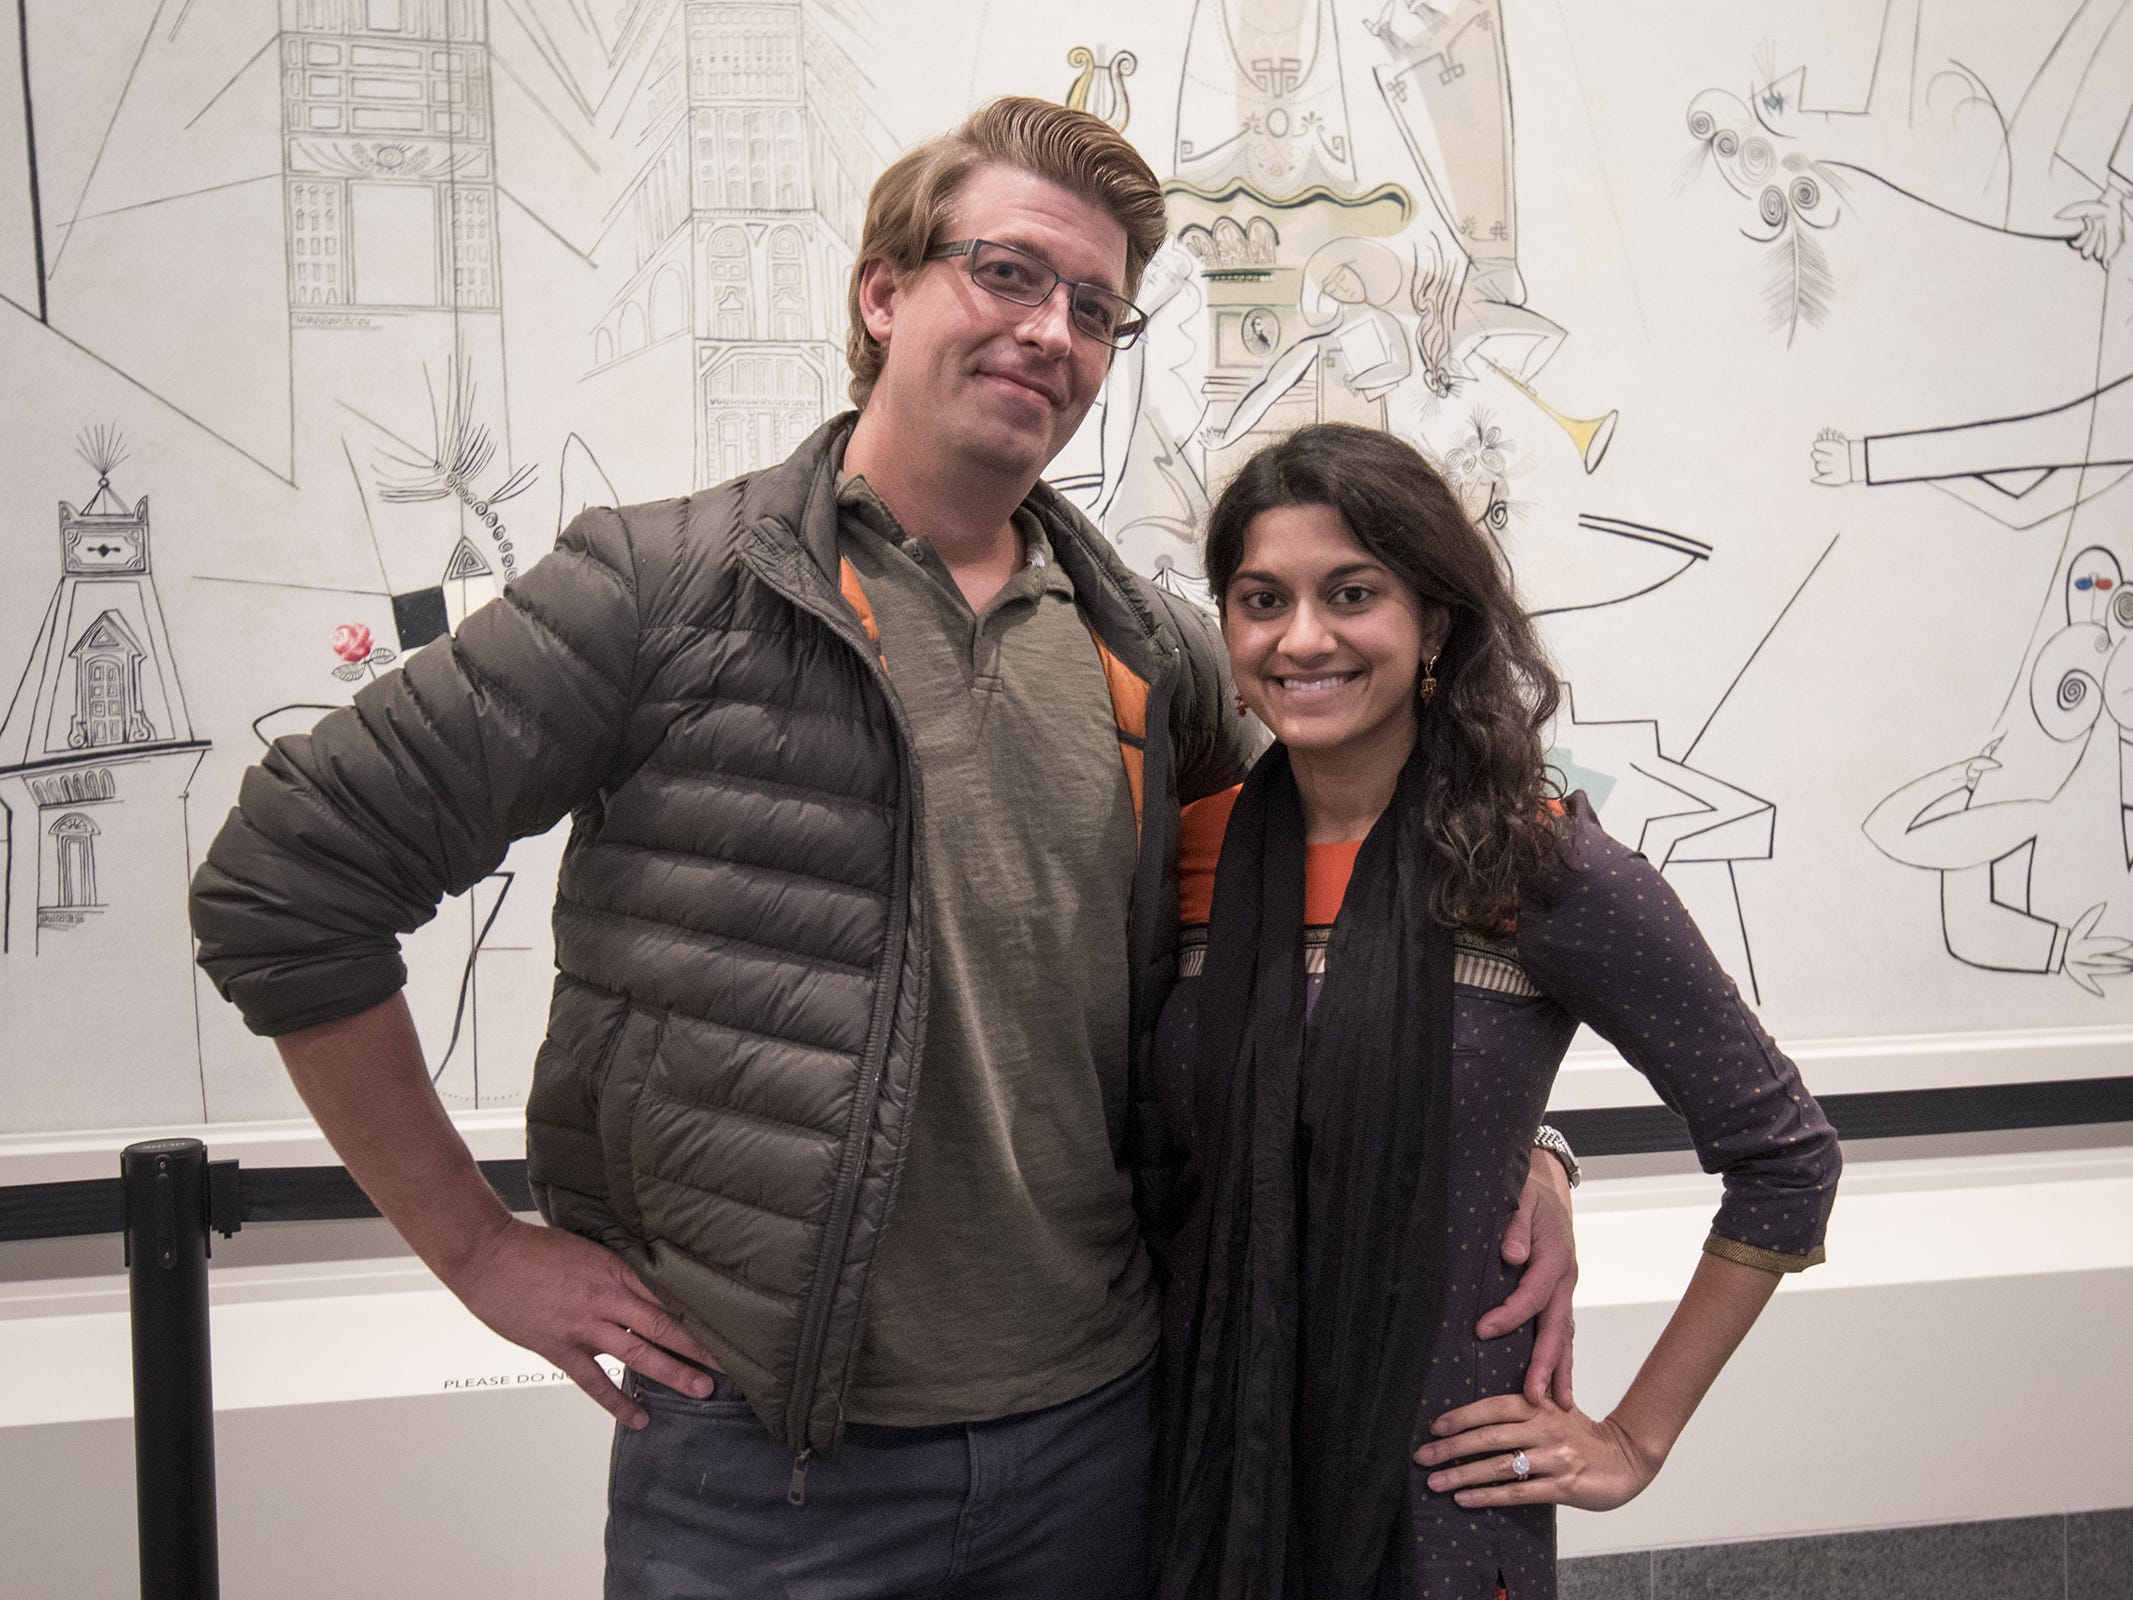 Brian and Janaki Warner of Anderson attend Art After Dark at the Cincinnati Art Museum.